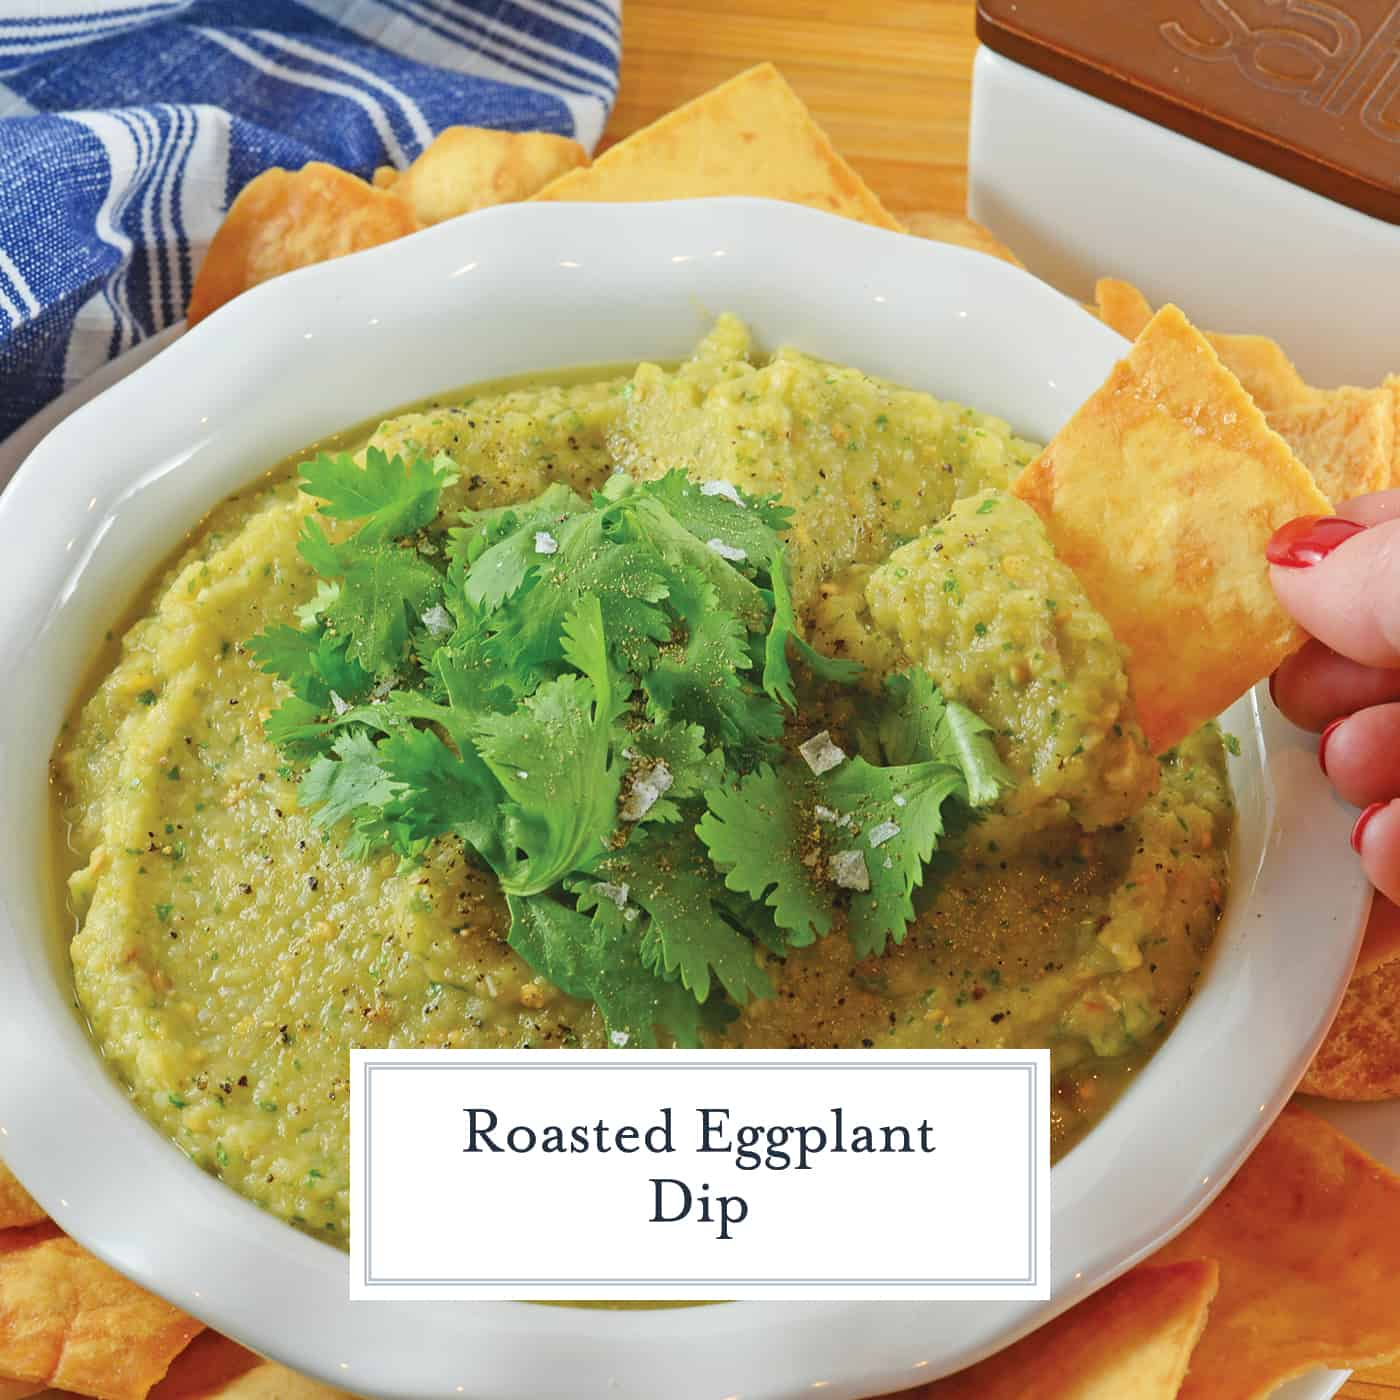 Roasted Eggplant Dip combines garlic, shallot, green chile, lime, and cilantro for a dip full of flavorful! Serve with tortilla chips or whole wheat flatbread! #roastedeggplant #eggplantdip www.savoryexperiments.com